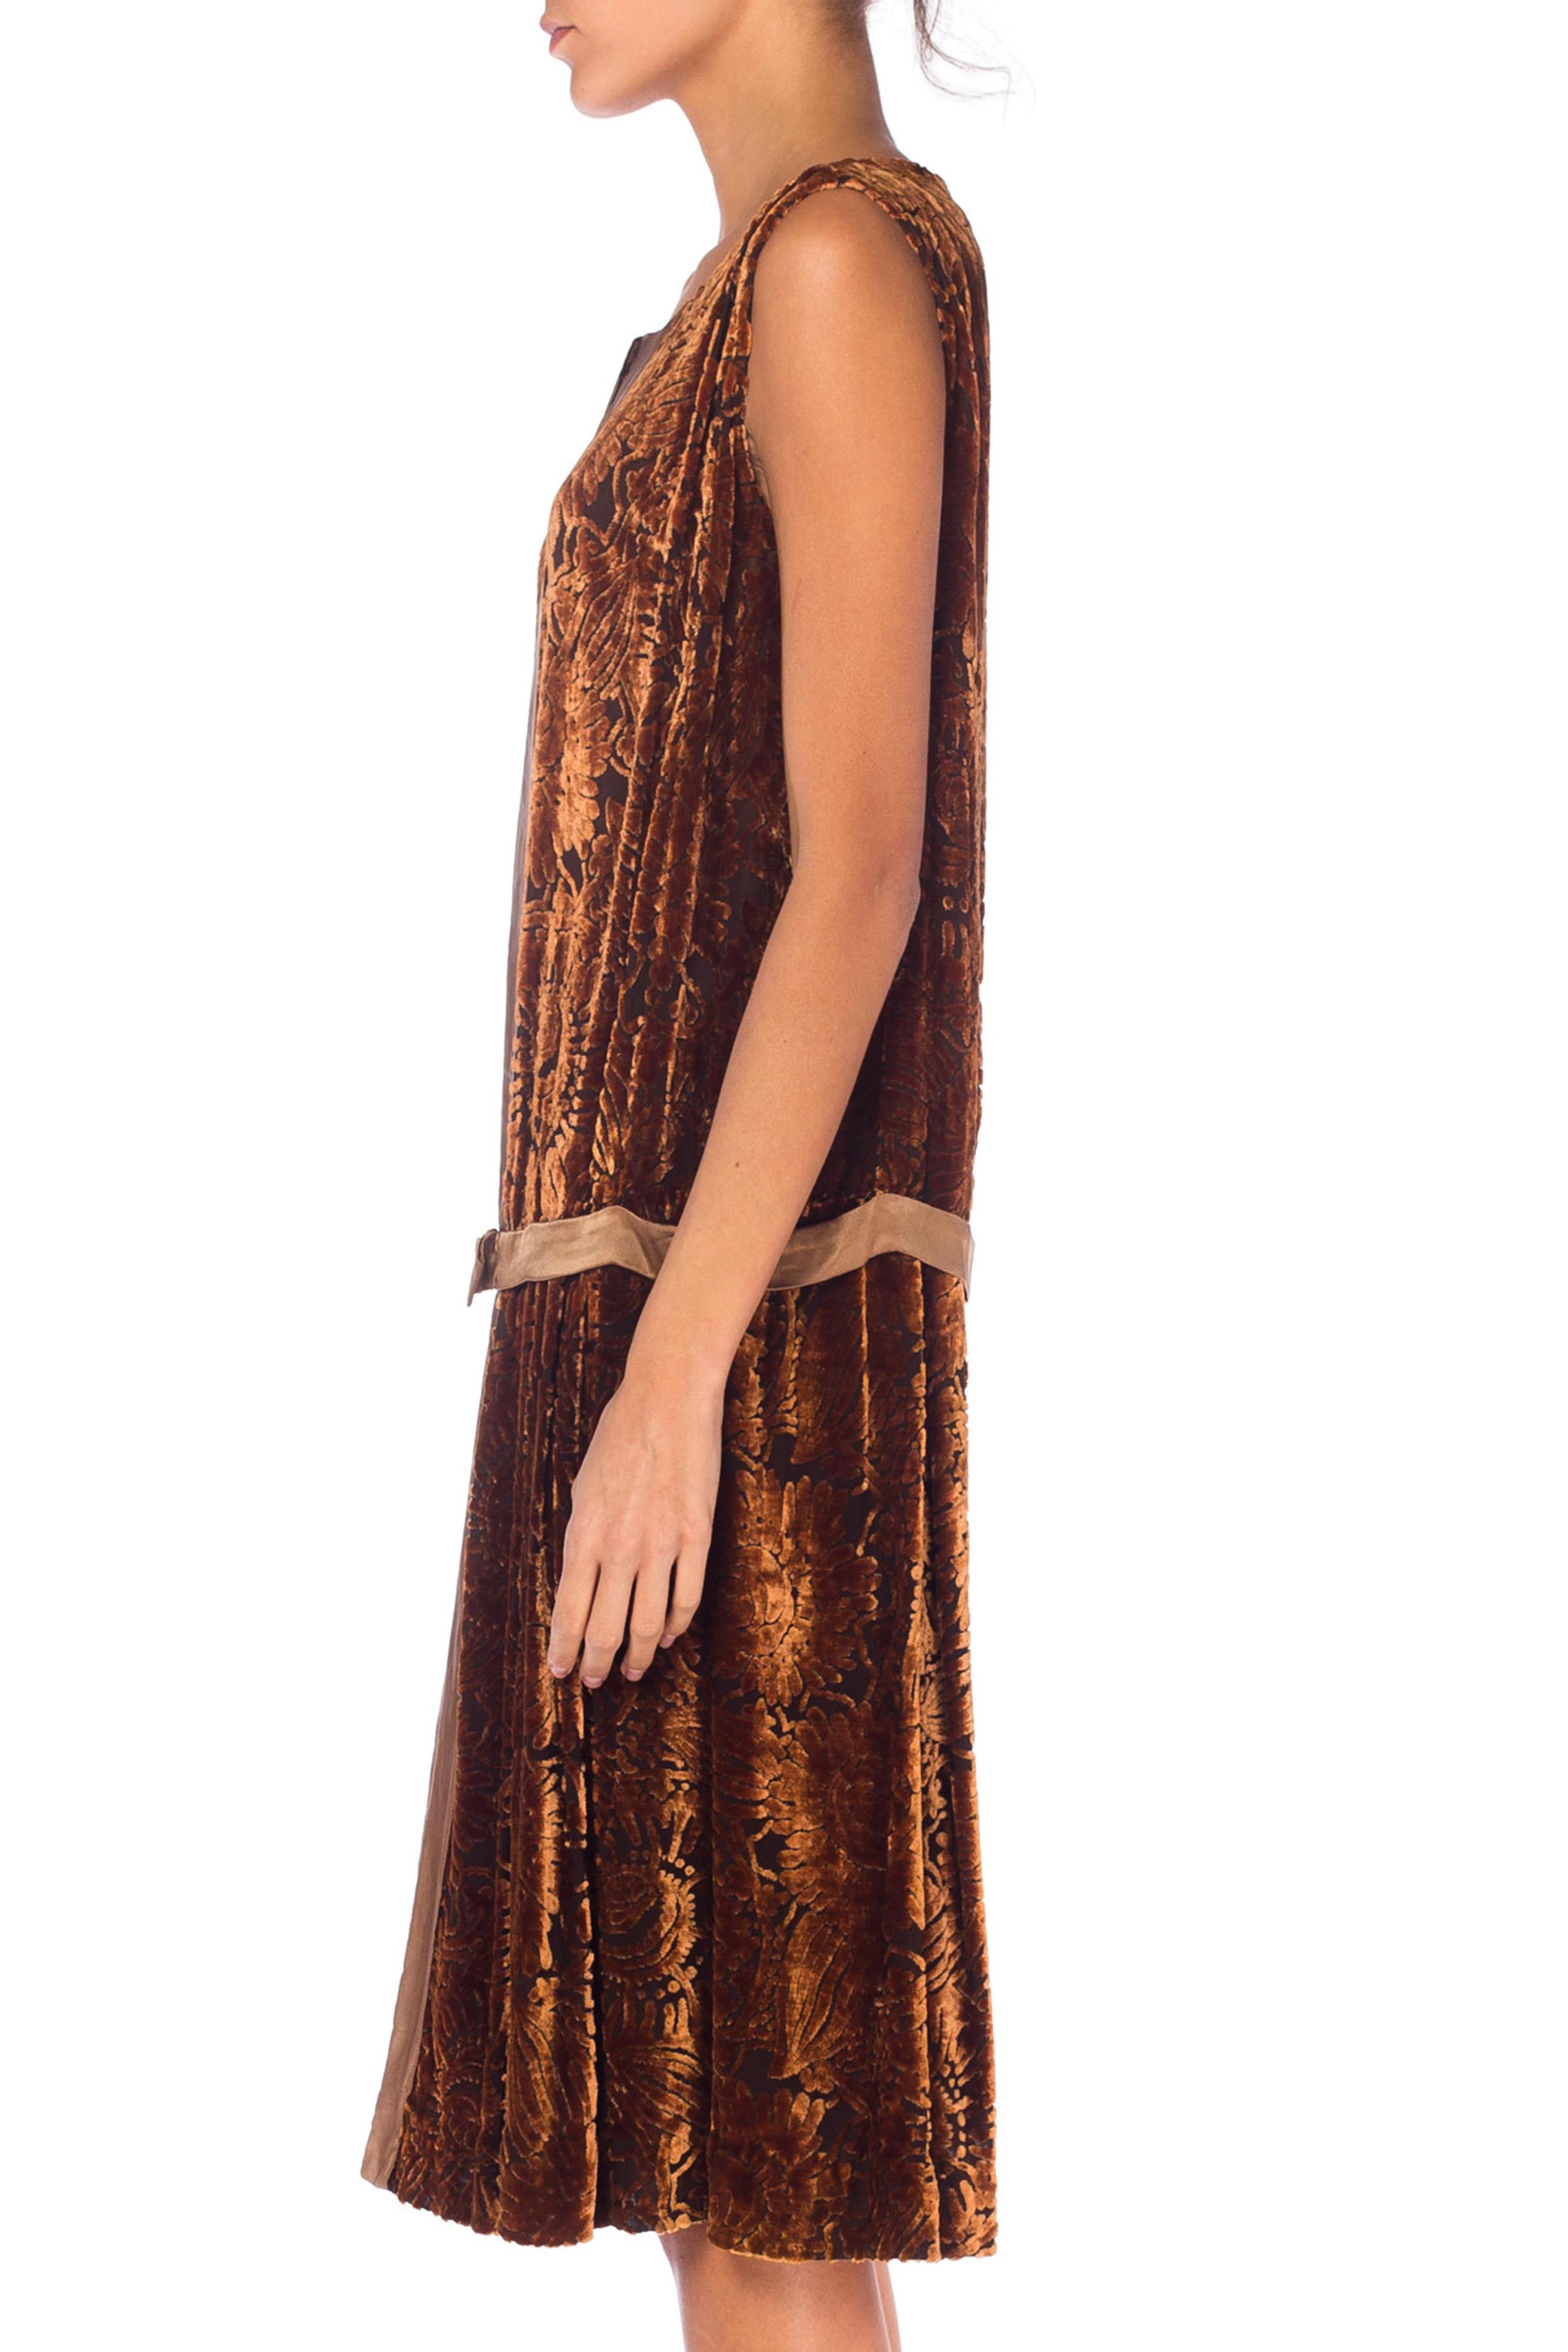 1920S Caramel Brown Silk Floral Burnout Velvet Cocktail Dress